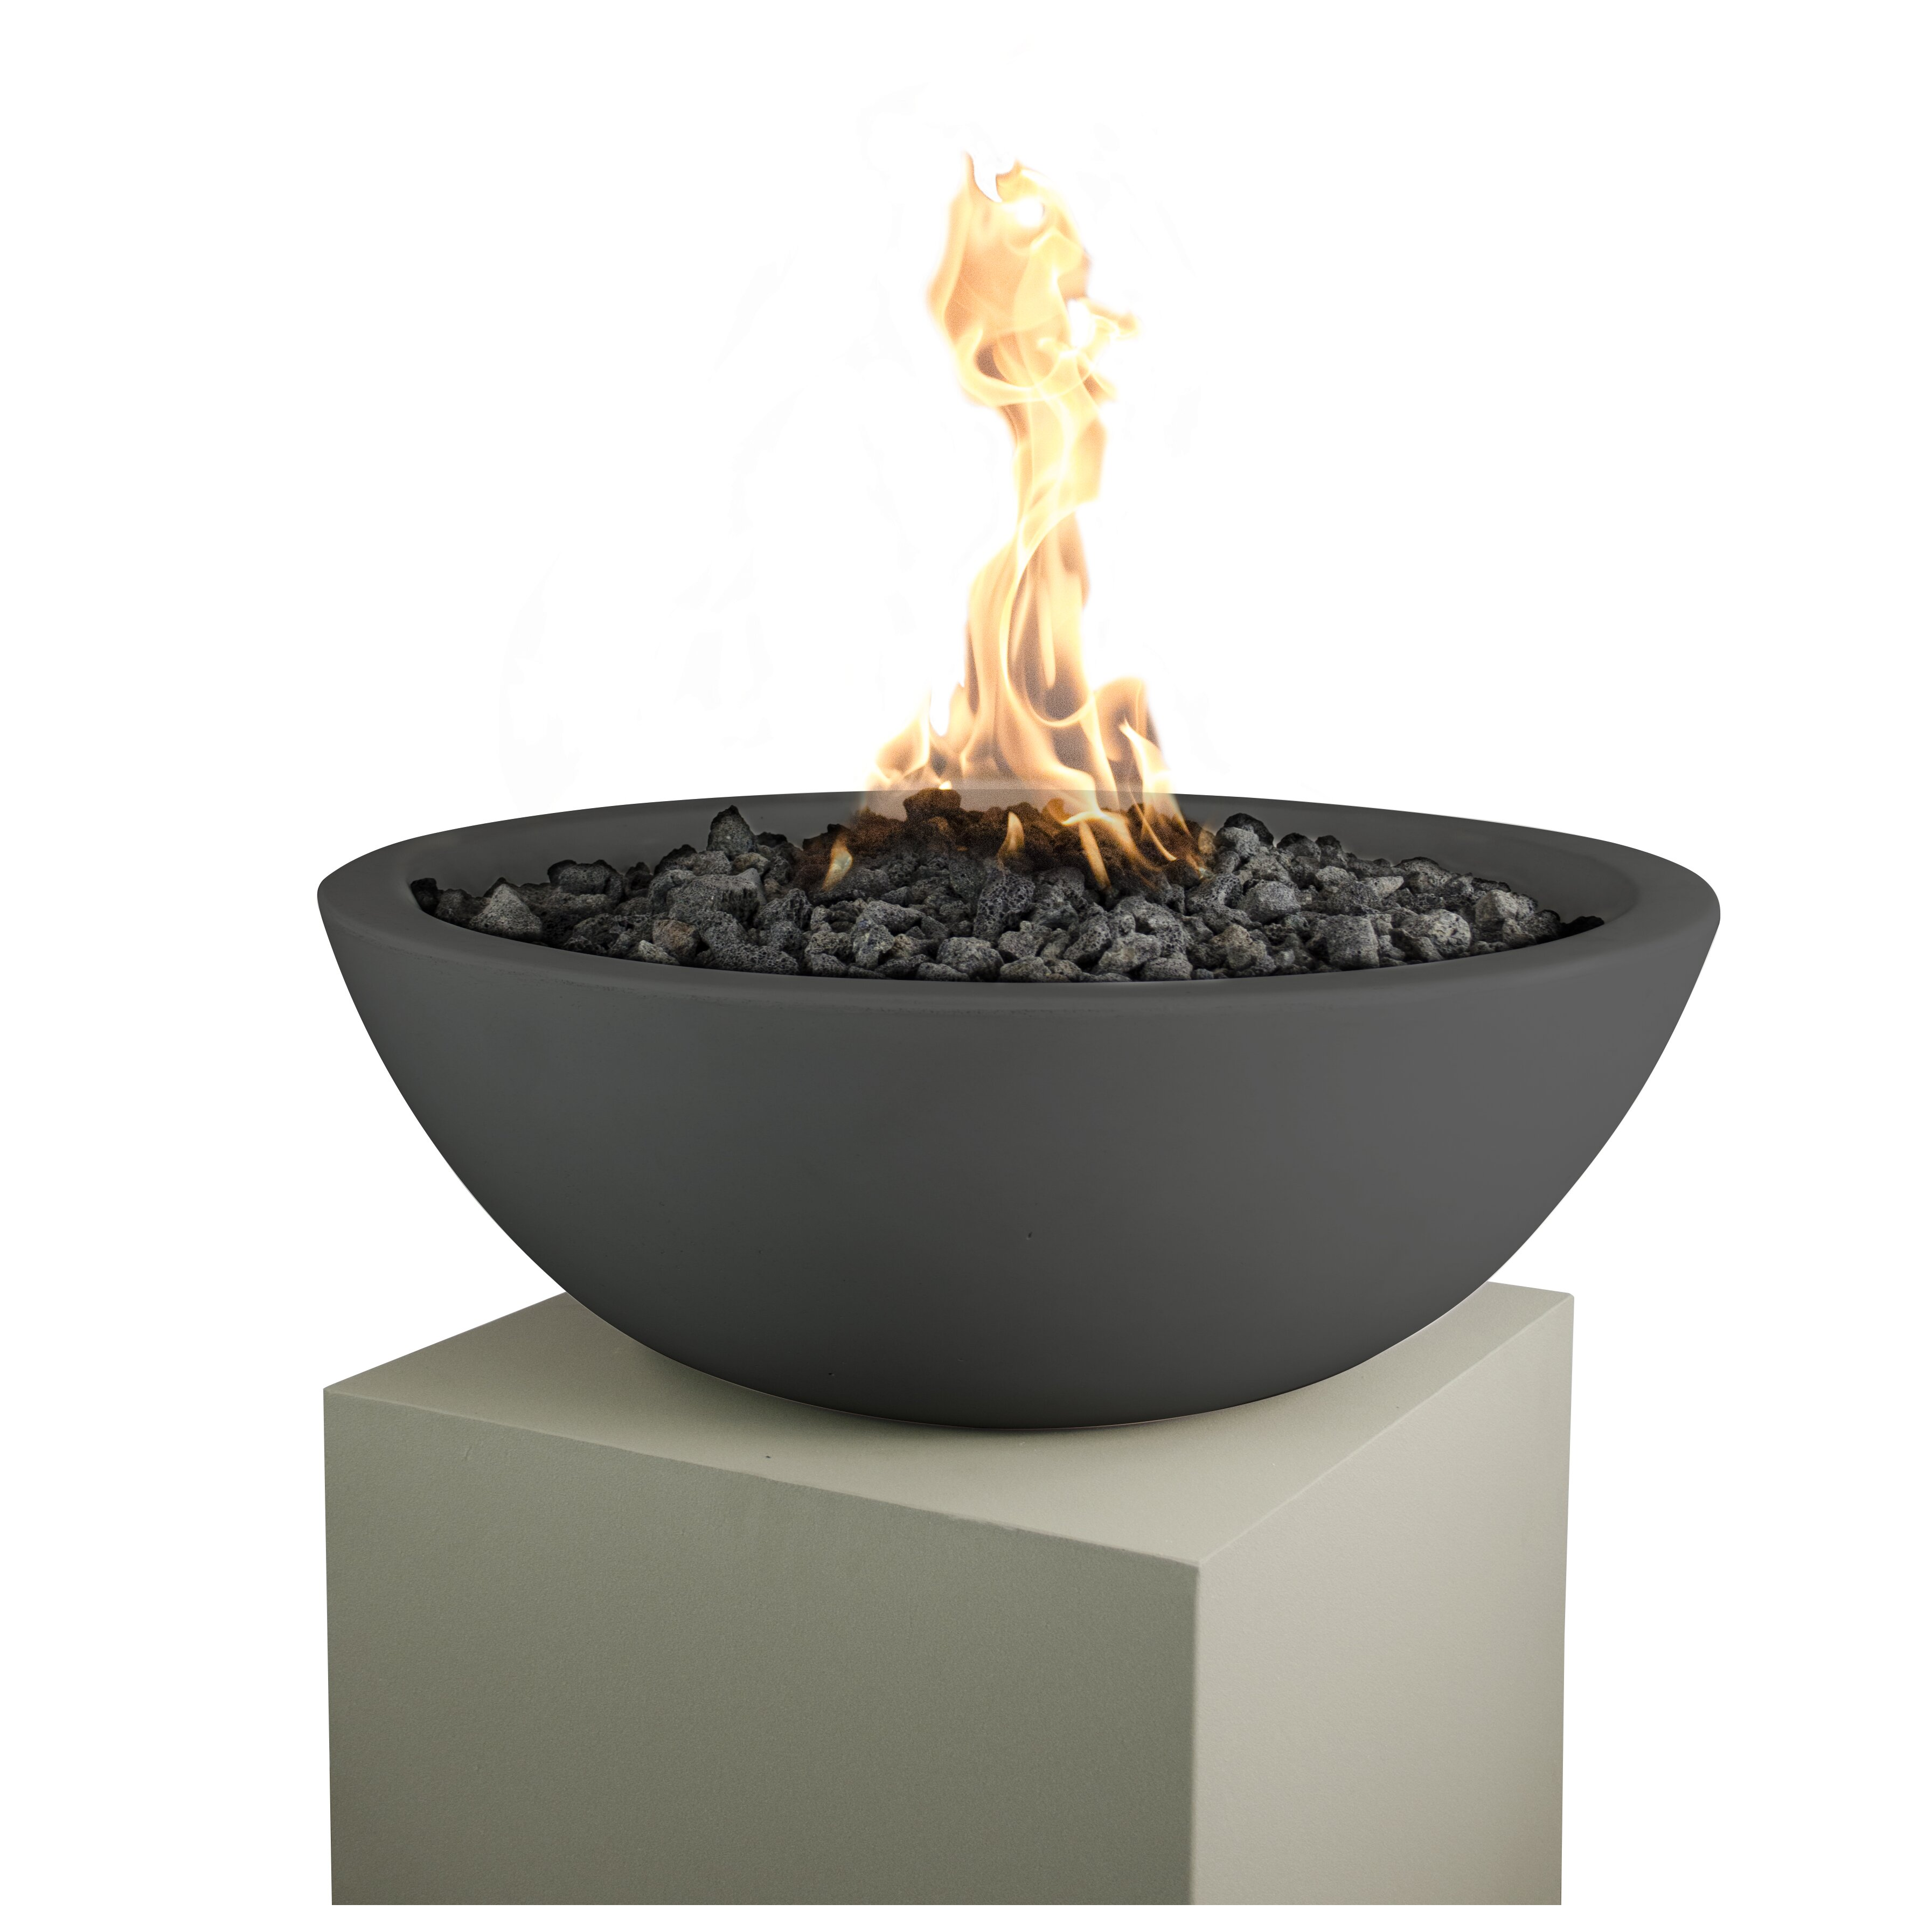 The Outdoor Plus Propane And Natural Gas Tabletop Fireplace